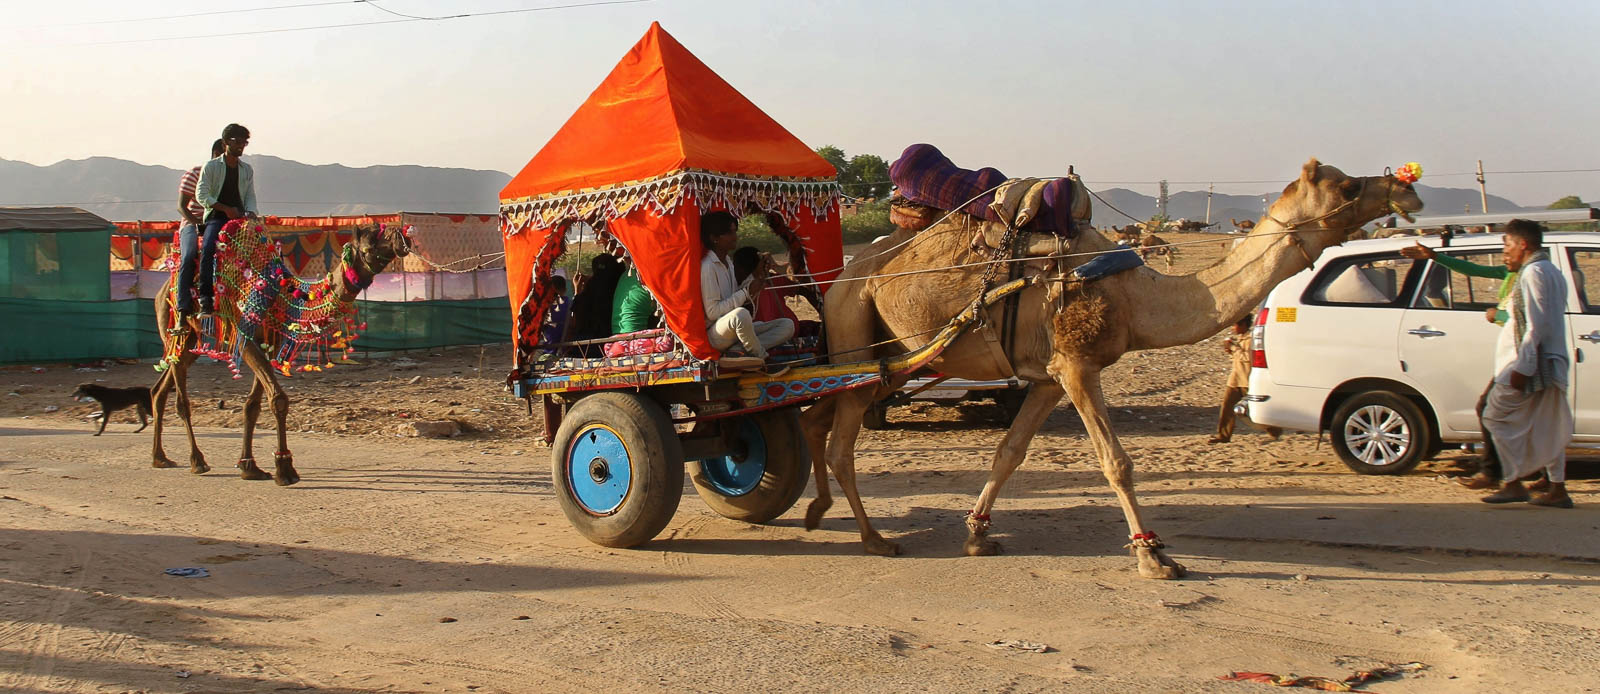 1023_Pushkar-camel-fair-14.jpg